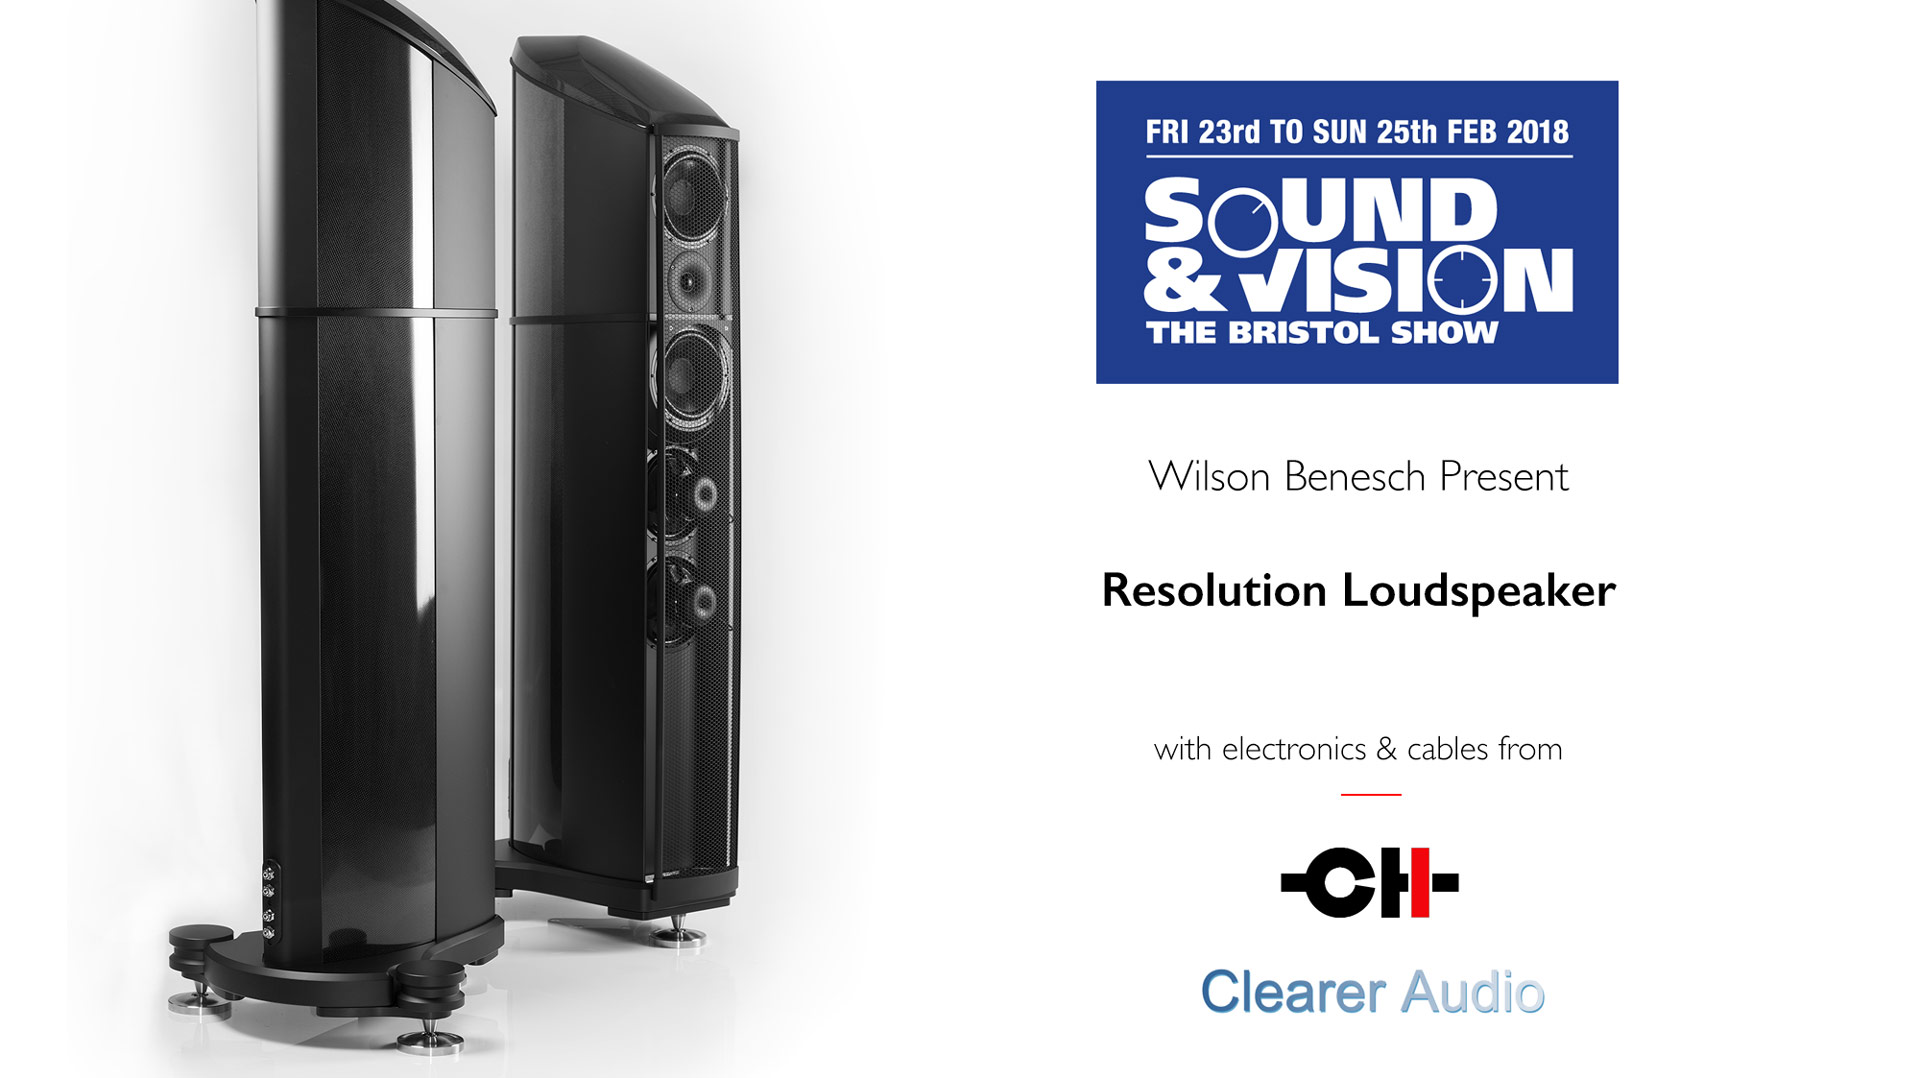 Wilson Benesch will demonstrate its Resolution floor standing loudspeaker for the first time in the U.K. at 'Sound & Vision' The Bristol Show